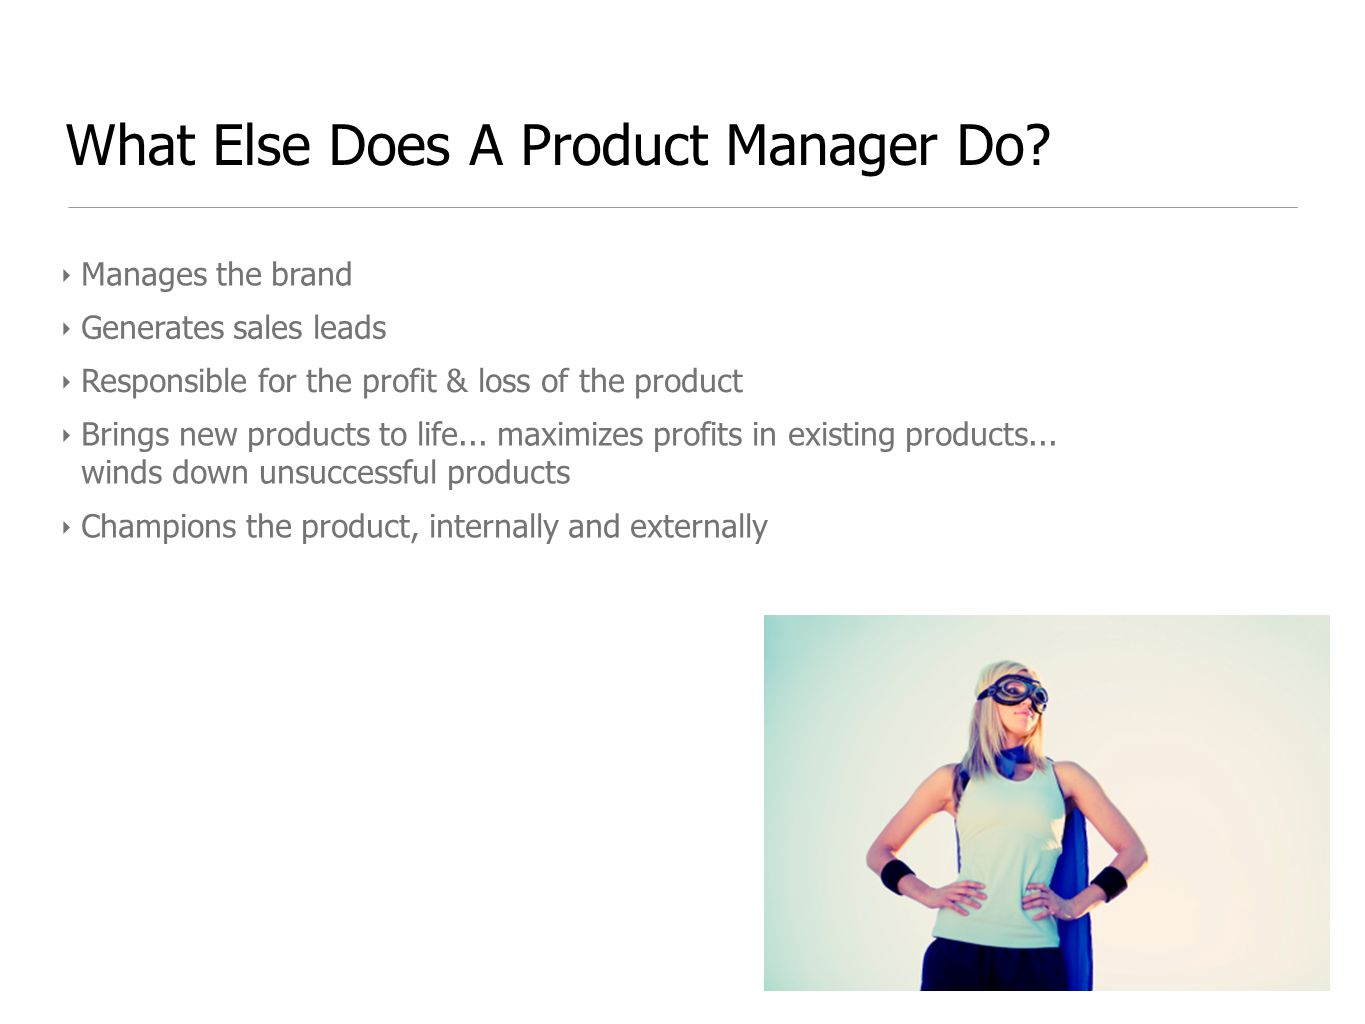 What Else Does A Product Manager Do